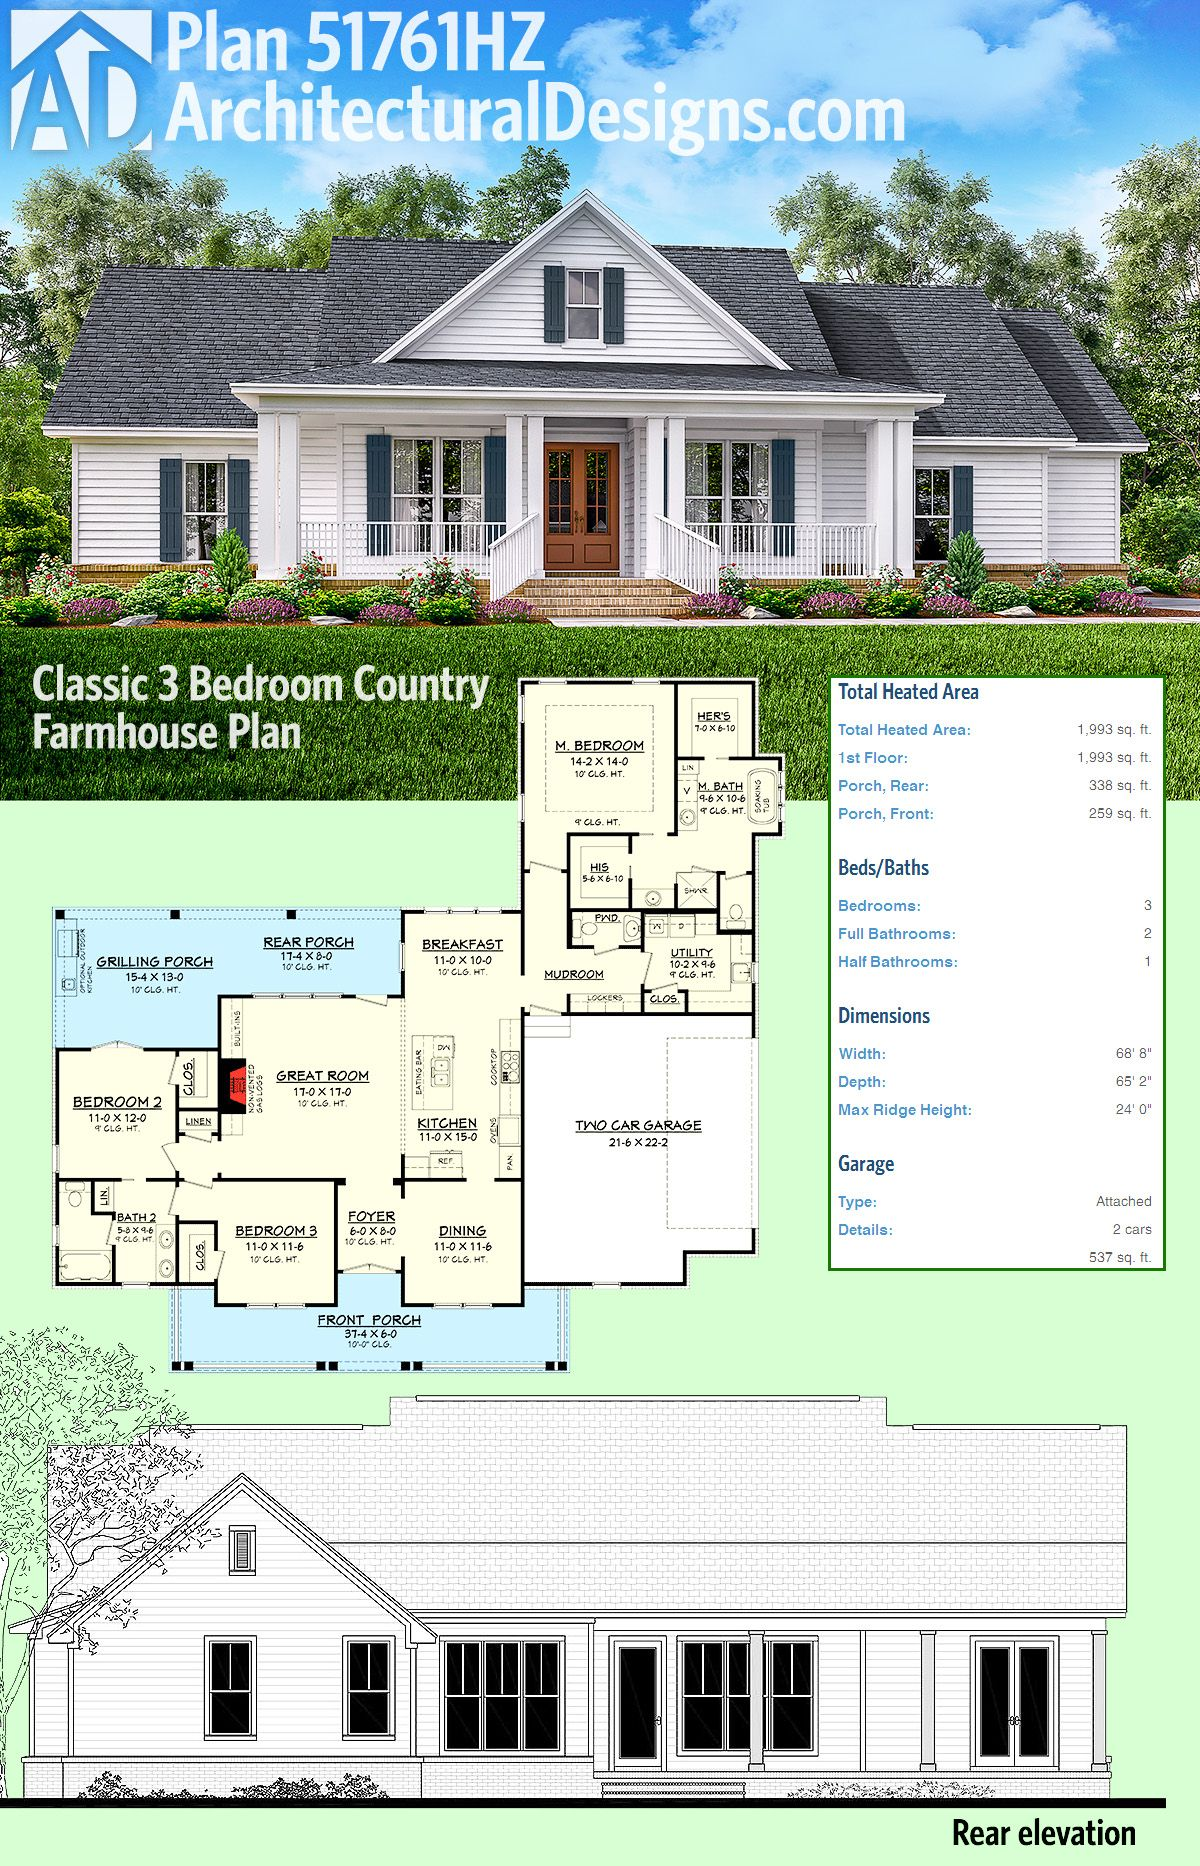 Introducing Architectural Designs House Plan 51761HZ (Classic 3 Bedroom  Country Farmhouse Plan). It